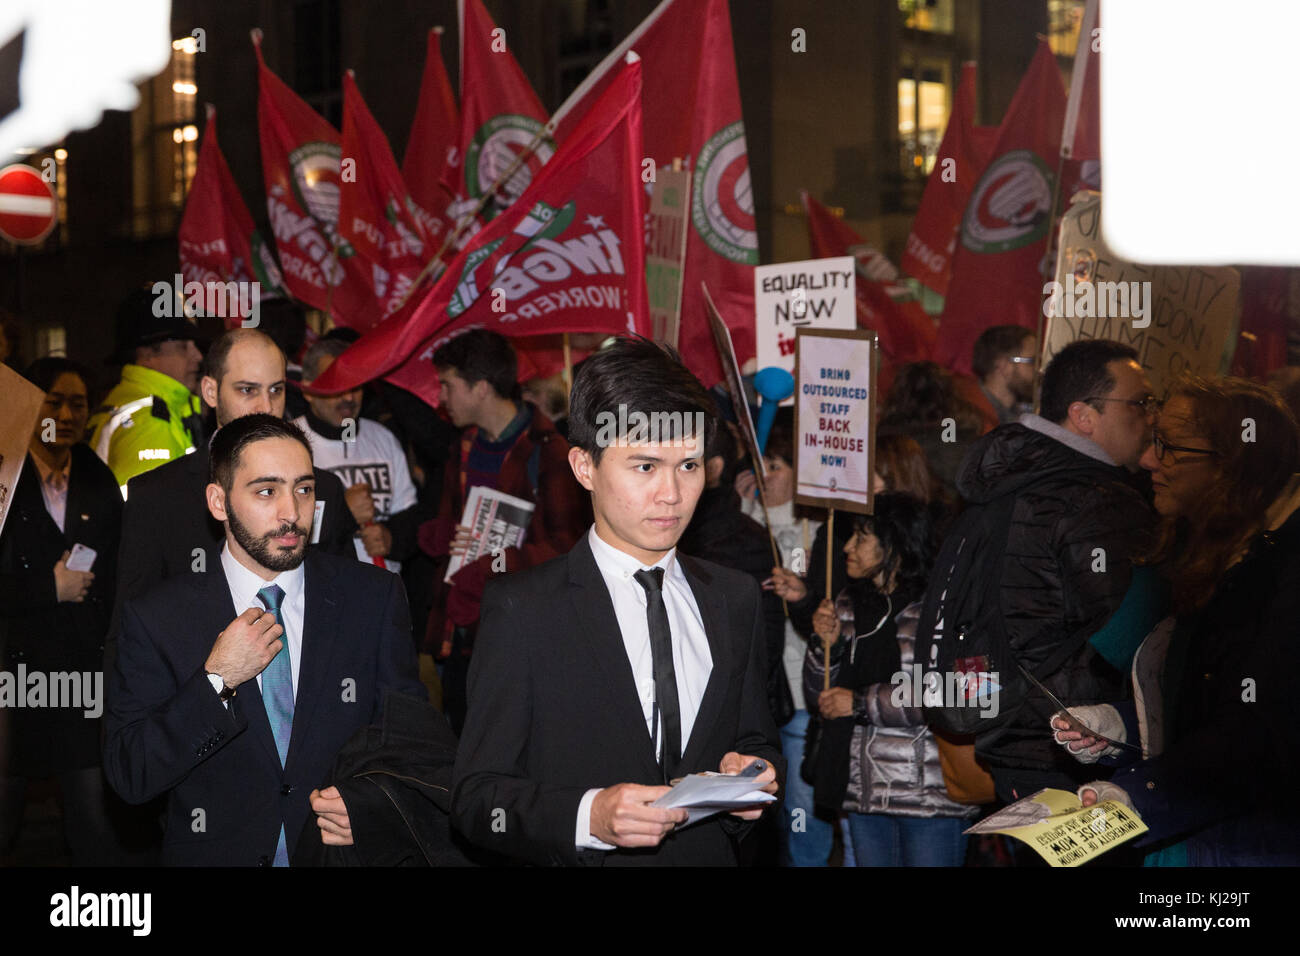 London, UK. 21st November, 2017. Outsourced workers belonging to the IWGB trade union and supporters protest outside - Stock Image